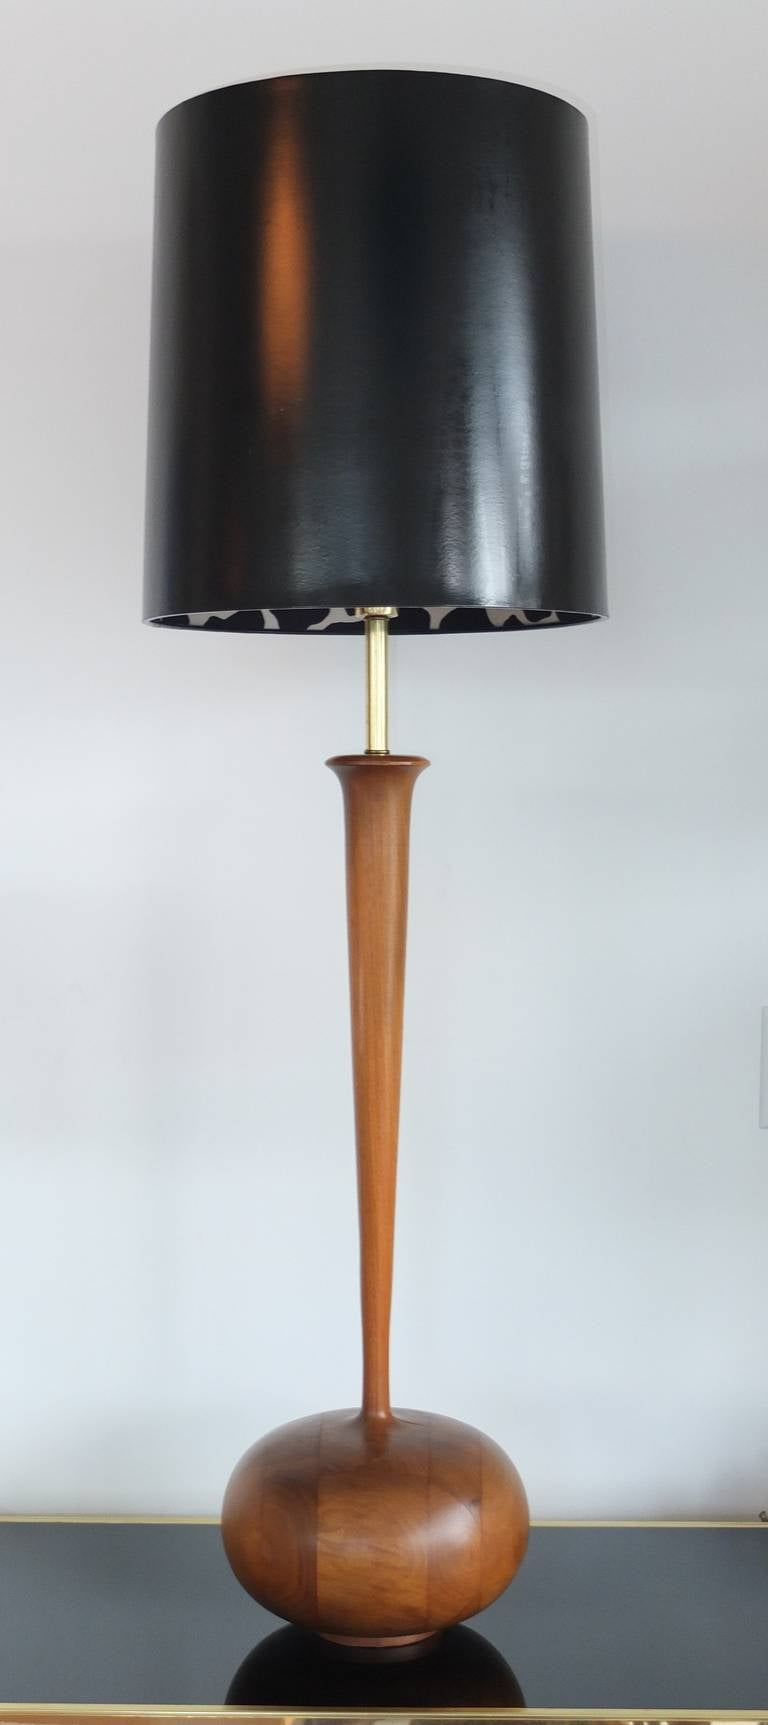 Studio Craft Organic Modern Walnut Lamp In Excellent Condition For Sale In Hingham, MA